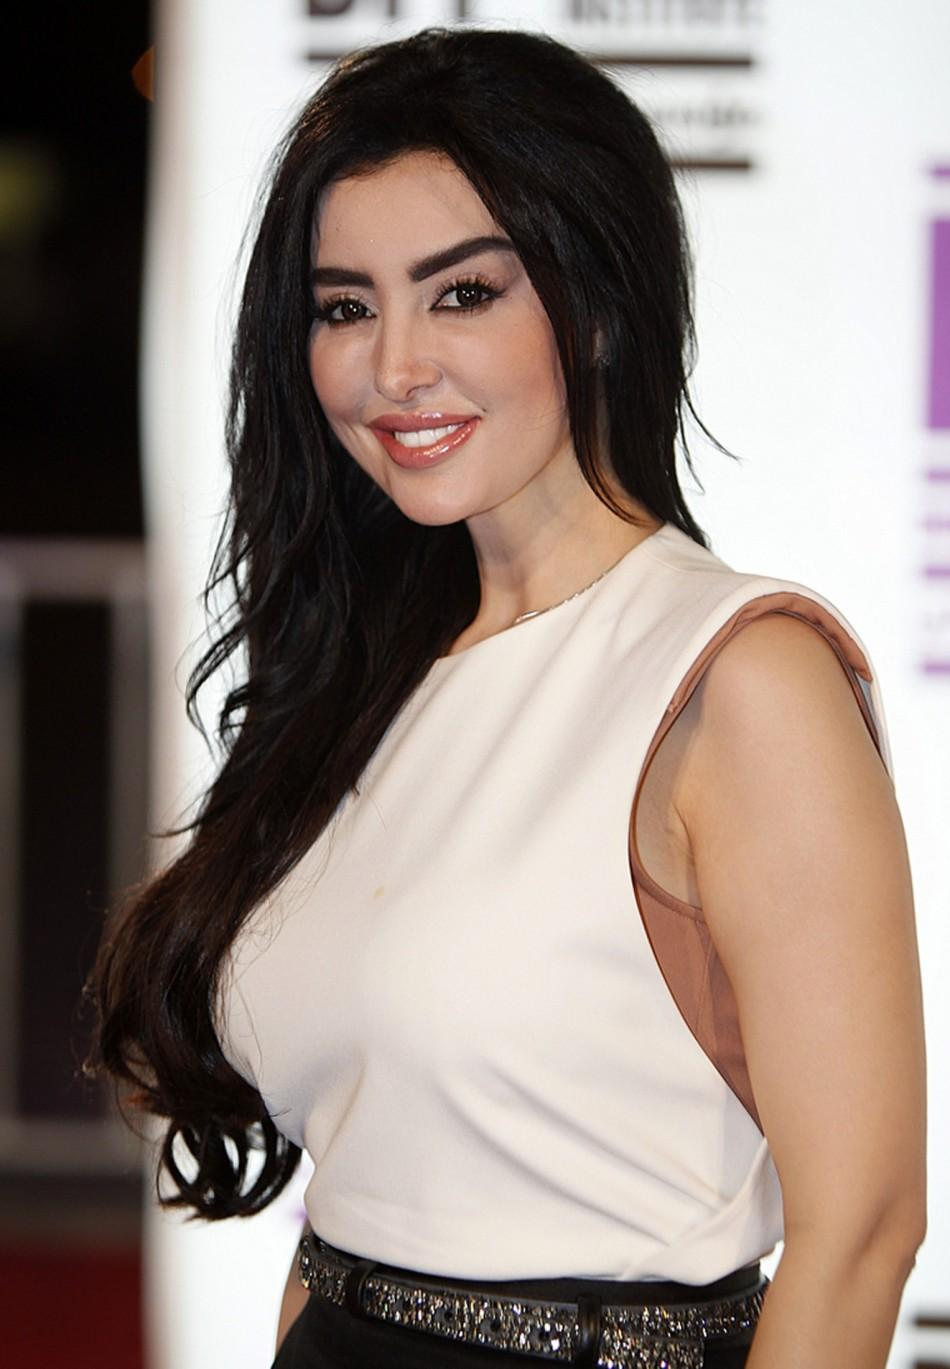 Actress Mayssa Maghraby arrives at the ''Where Do We Go Now?' premiere during Doha Tribeca Film Festival in Doha